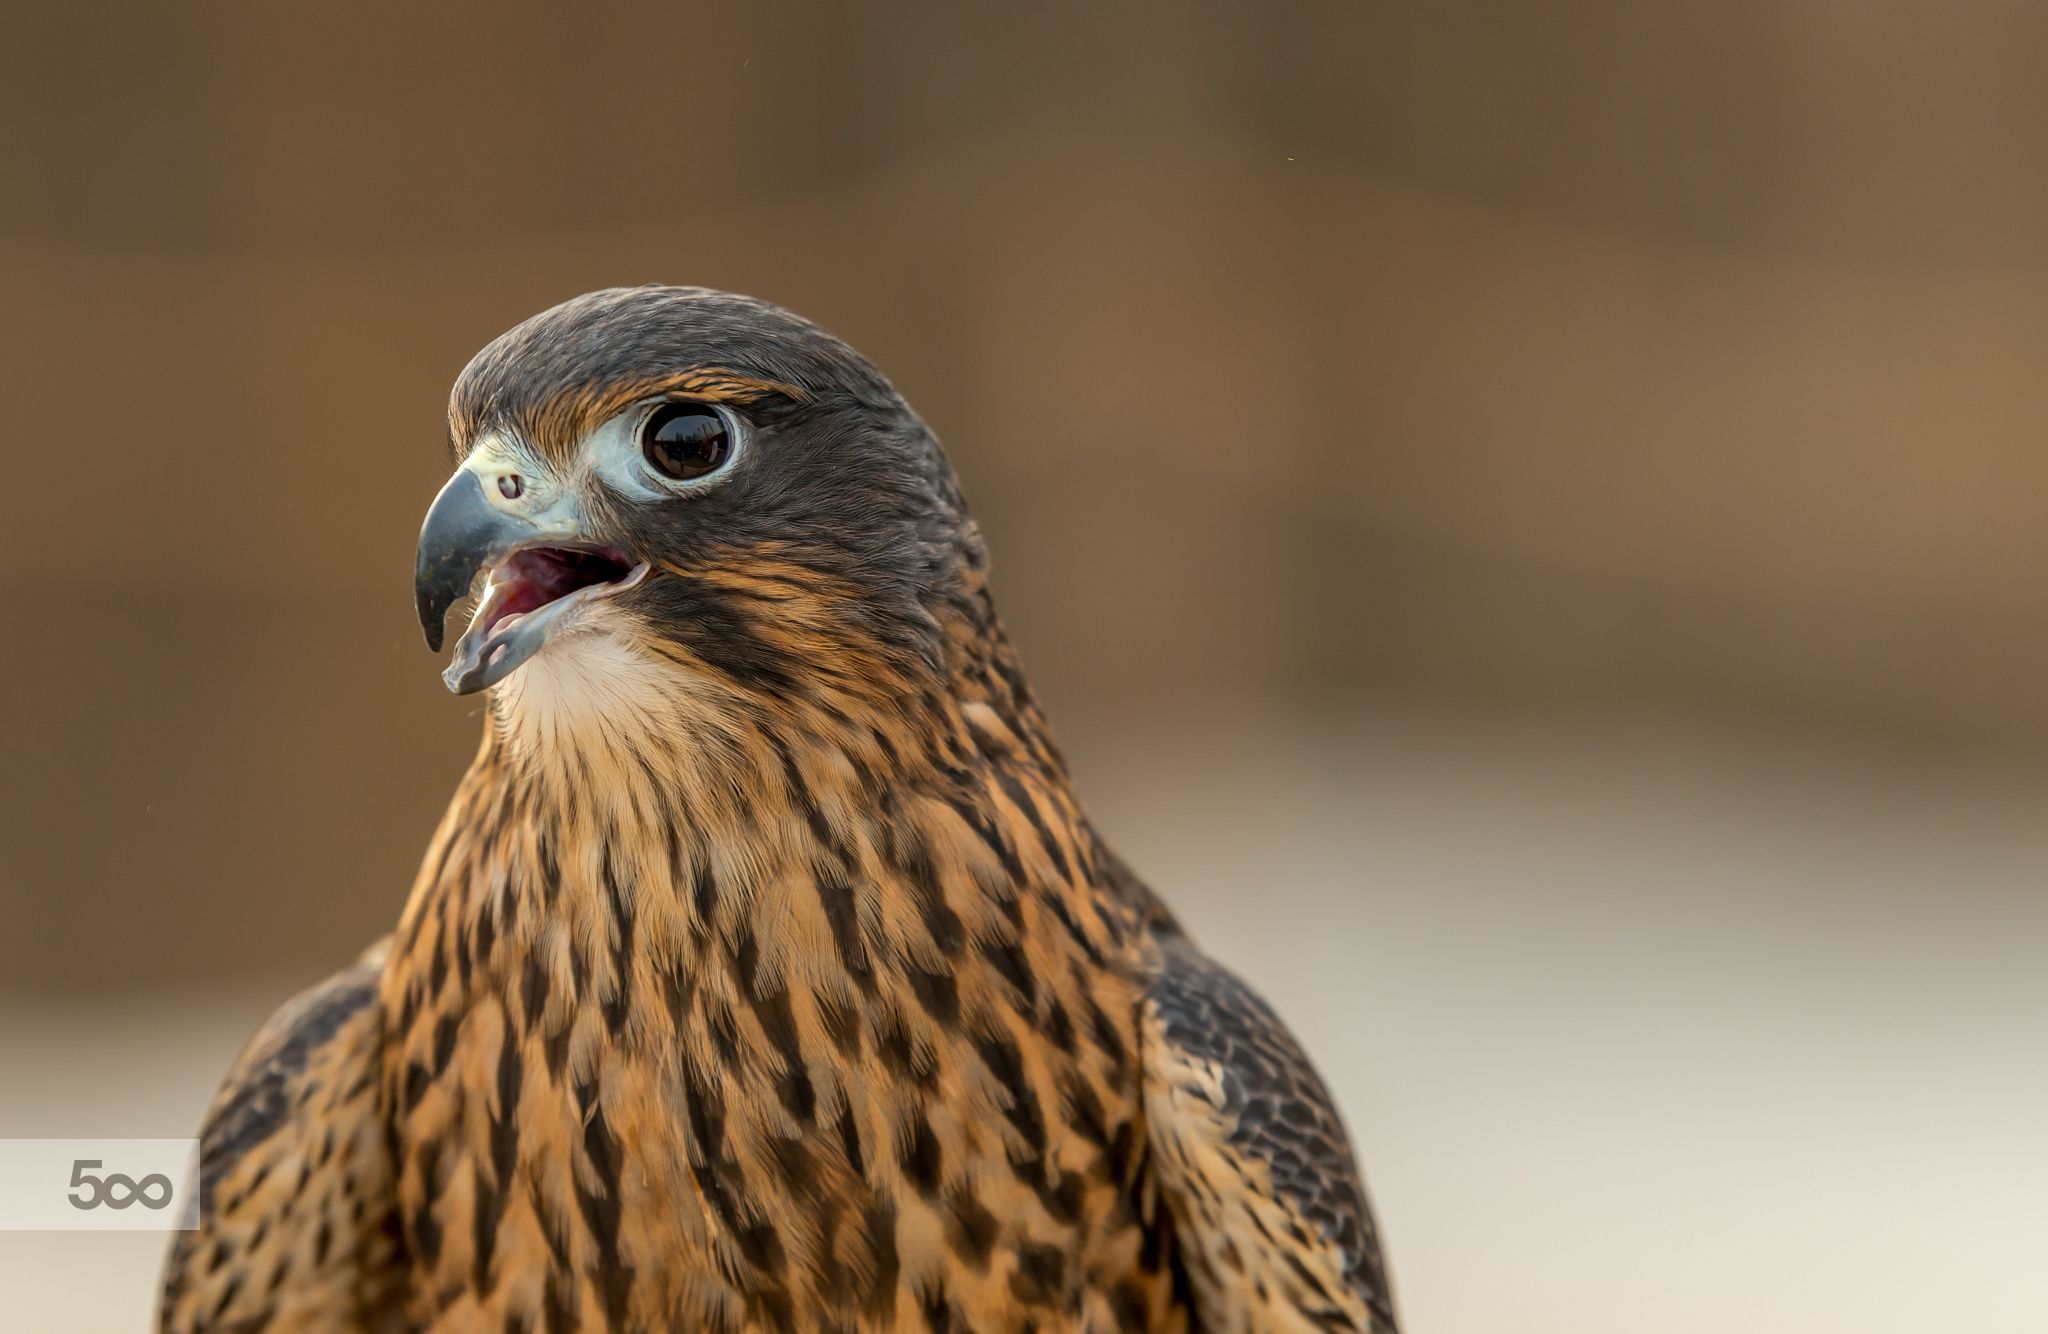 Photograph The Falcon by julian john on 500px